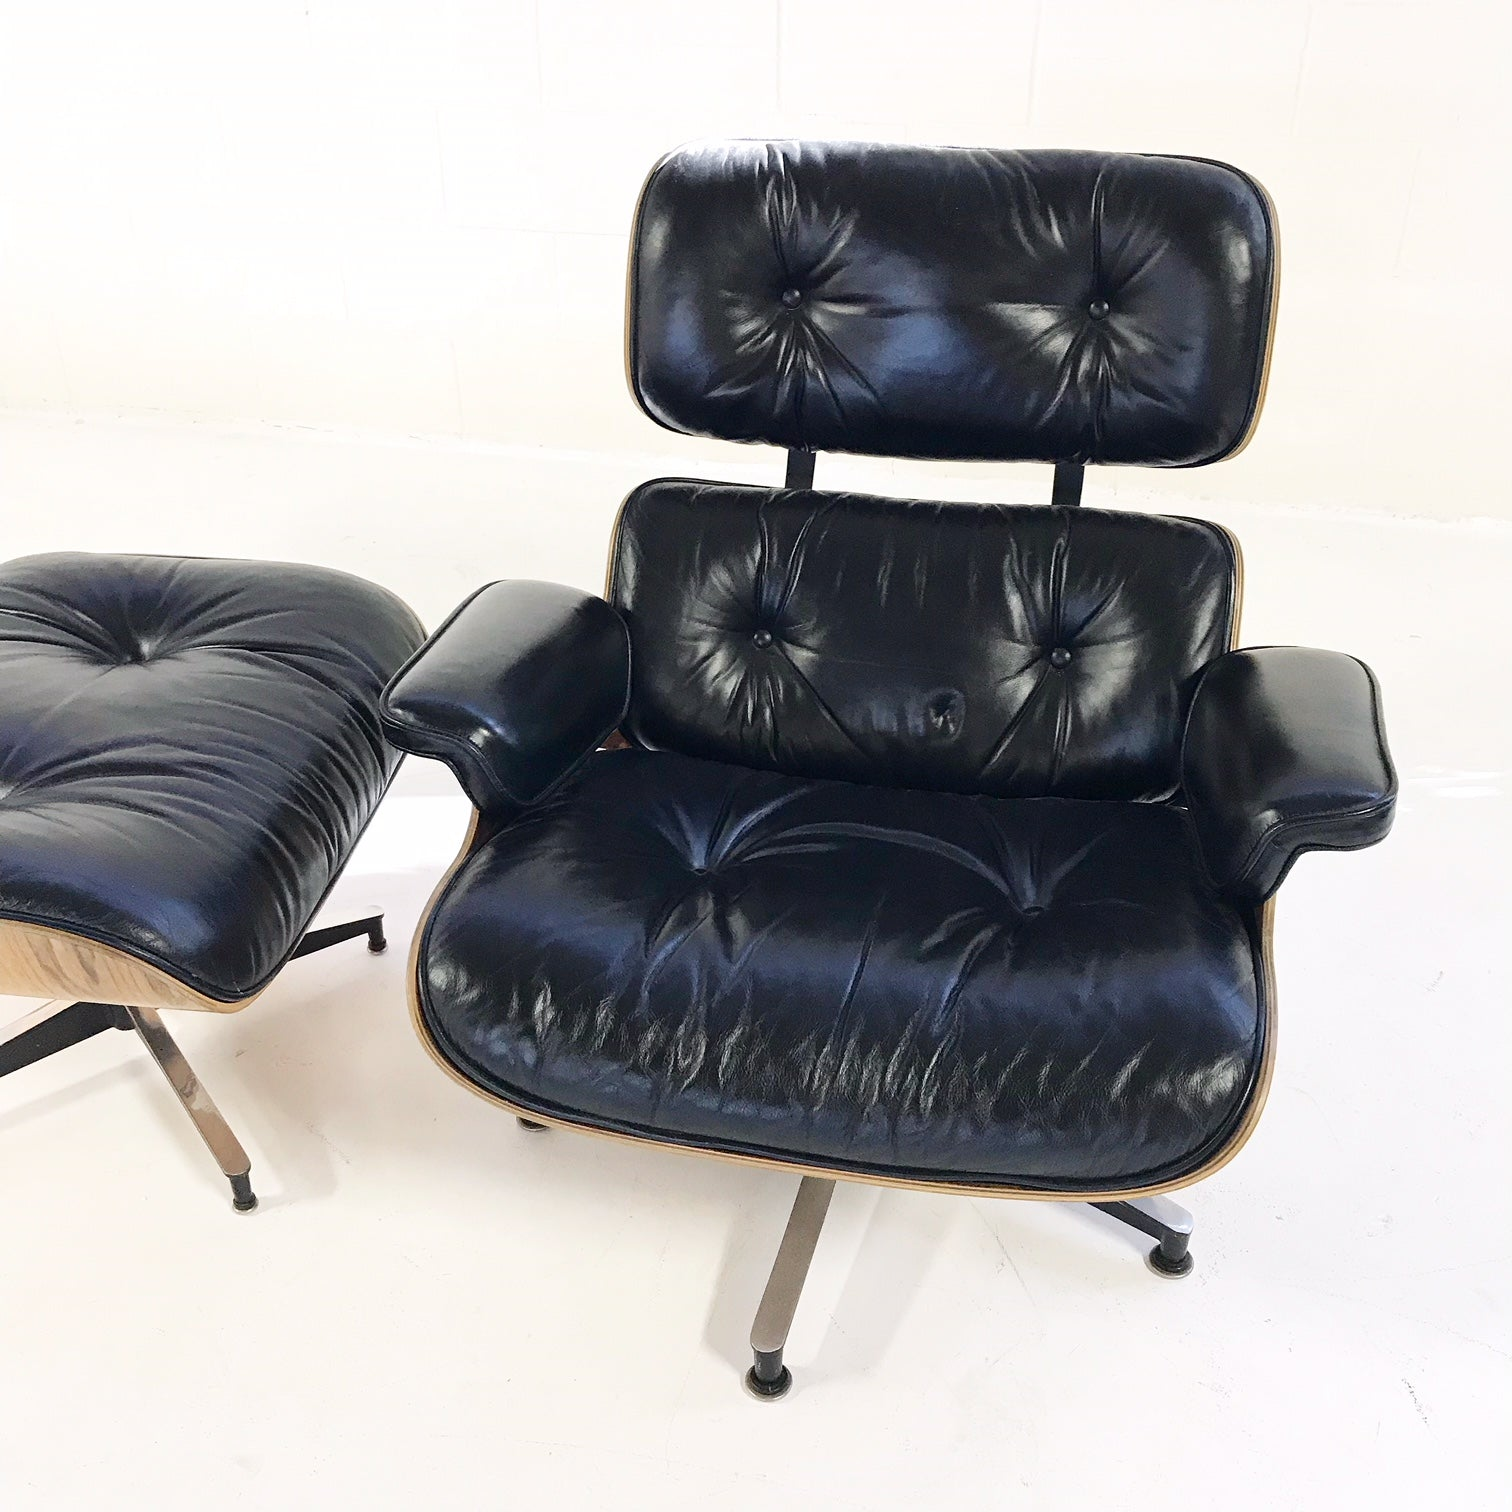 670 Lounge Chair and 671 Ottoman - FORSYTH